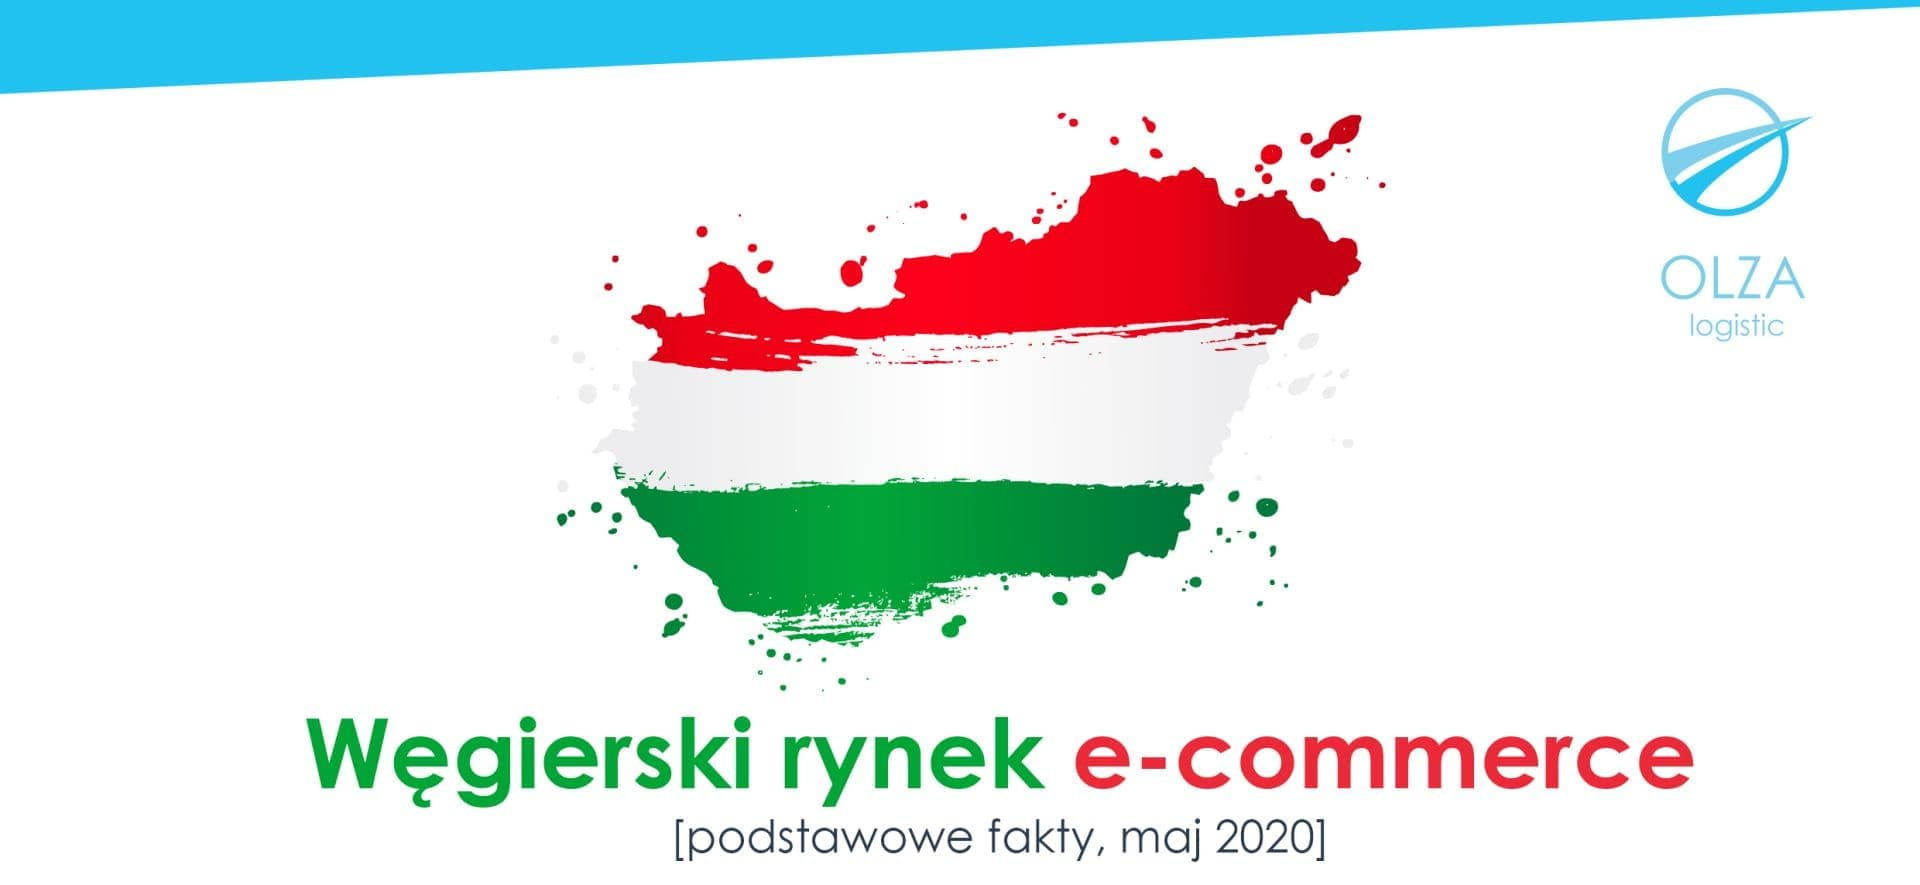 Węgierski rynek e-commerce - fact sheet